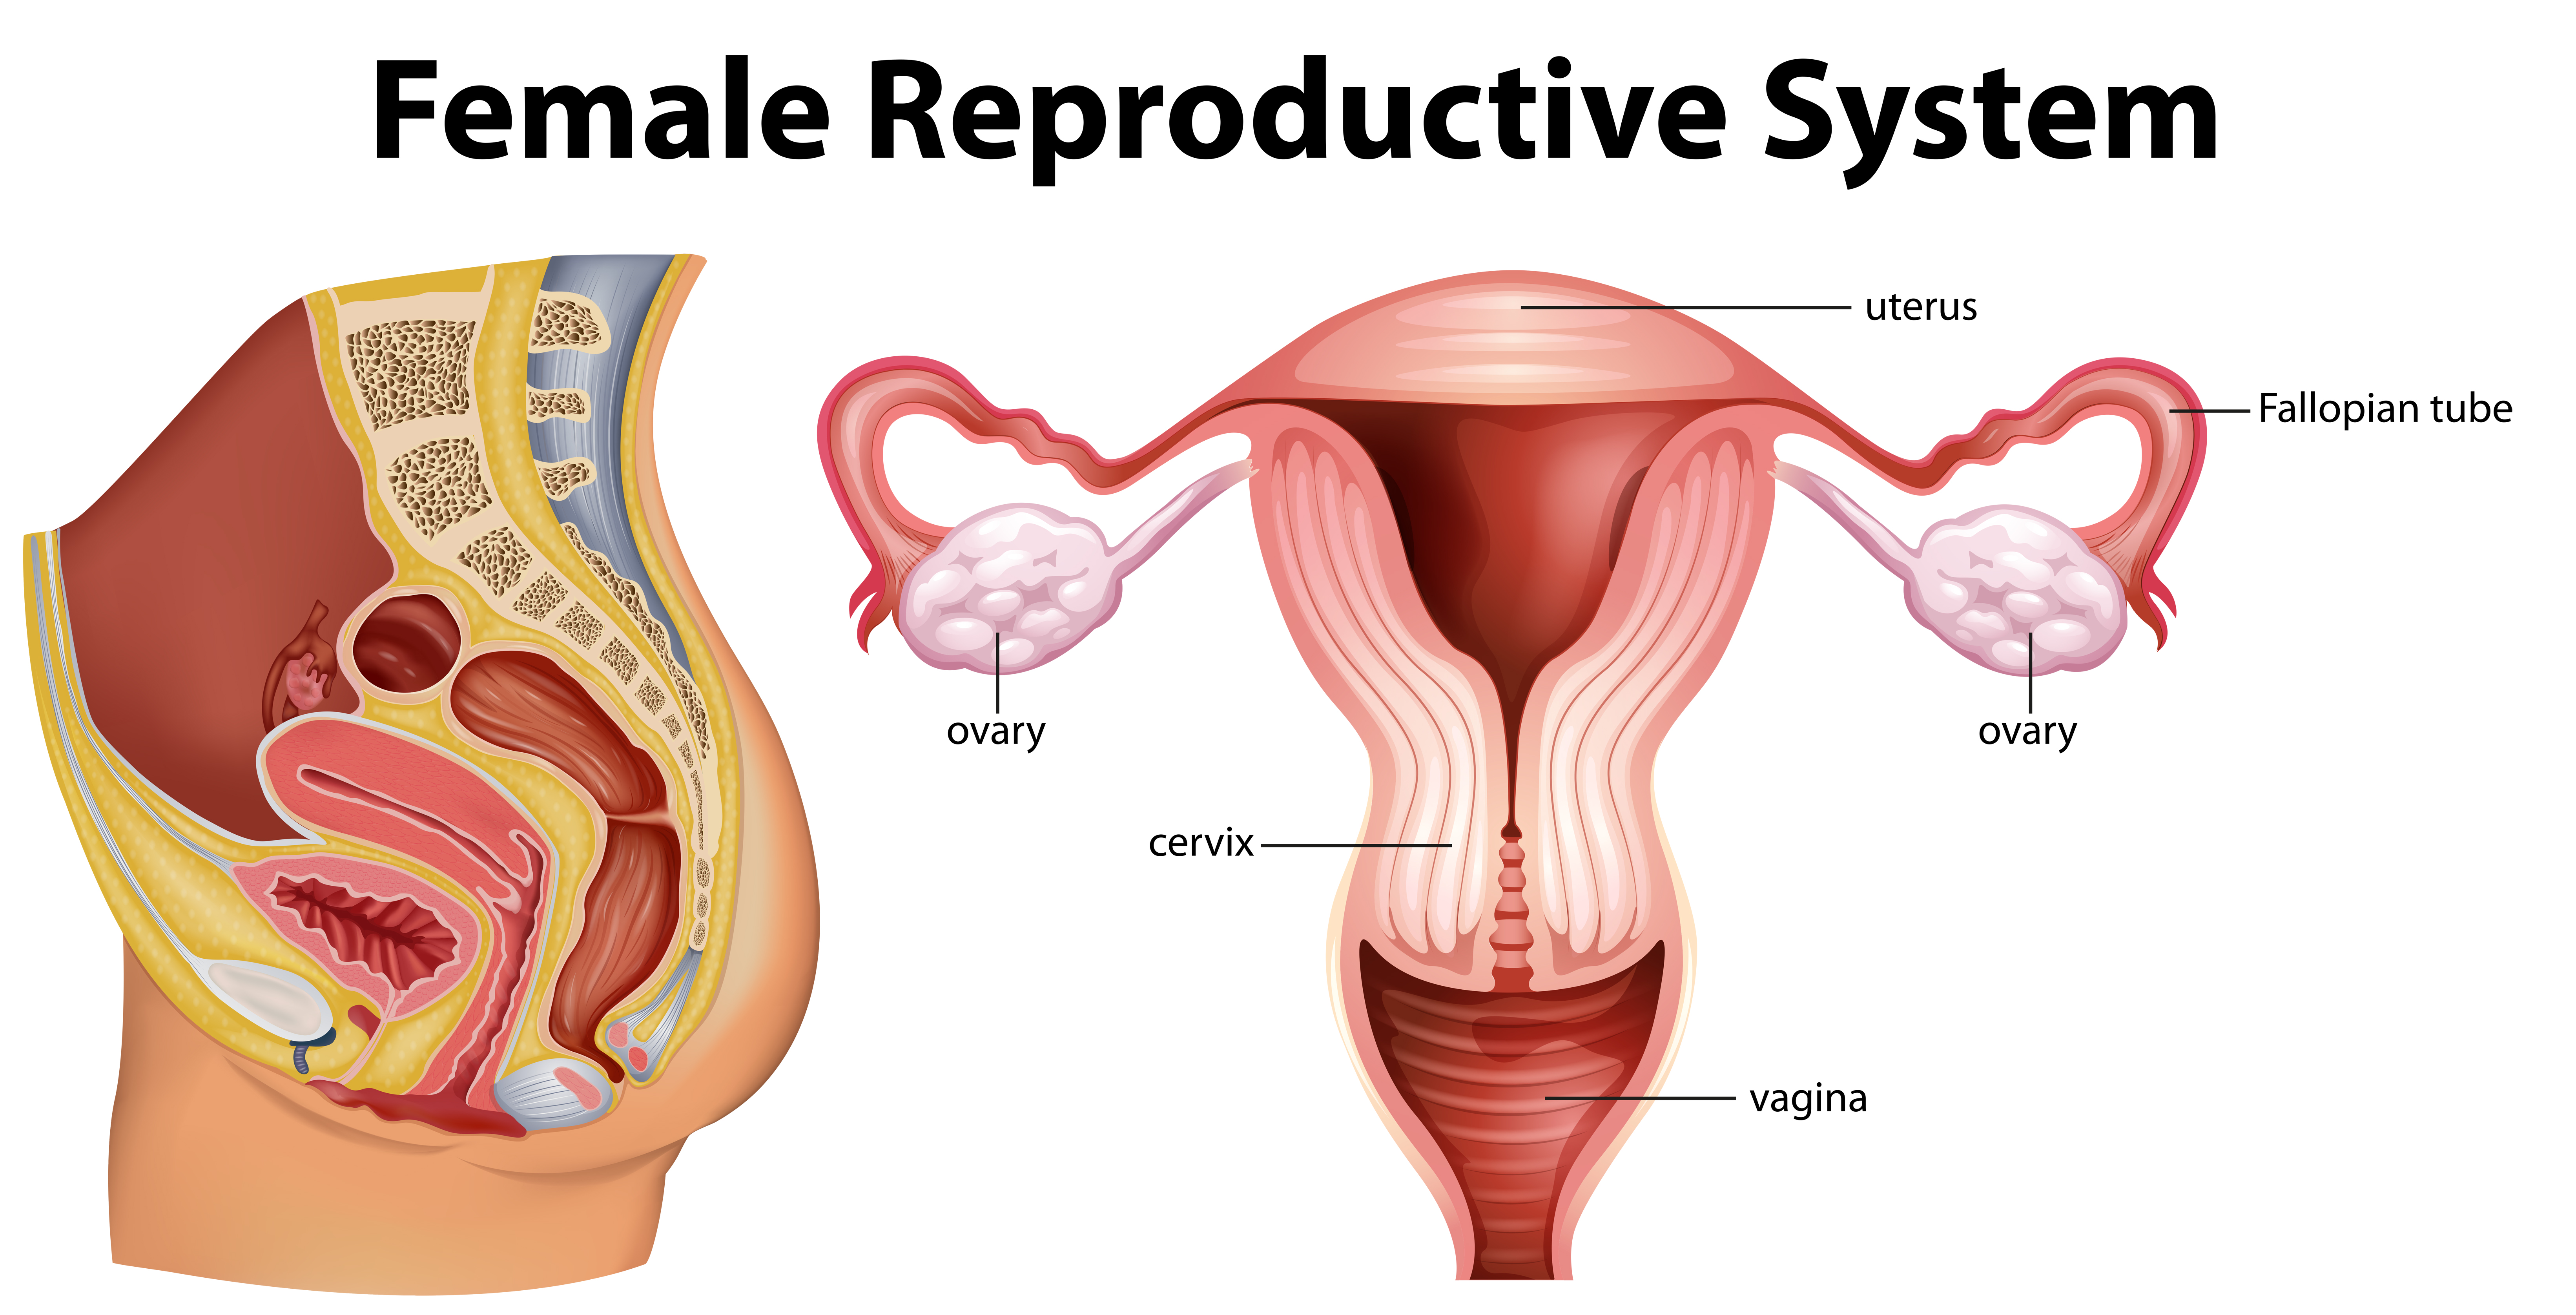 Female Reproductive System Free Vector Art - (26 Free Downloads)Vecteezy